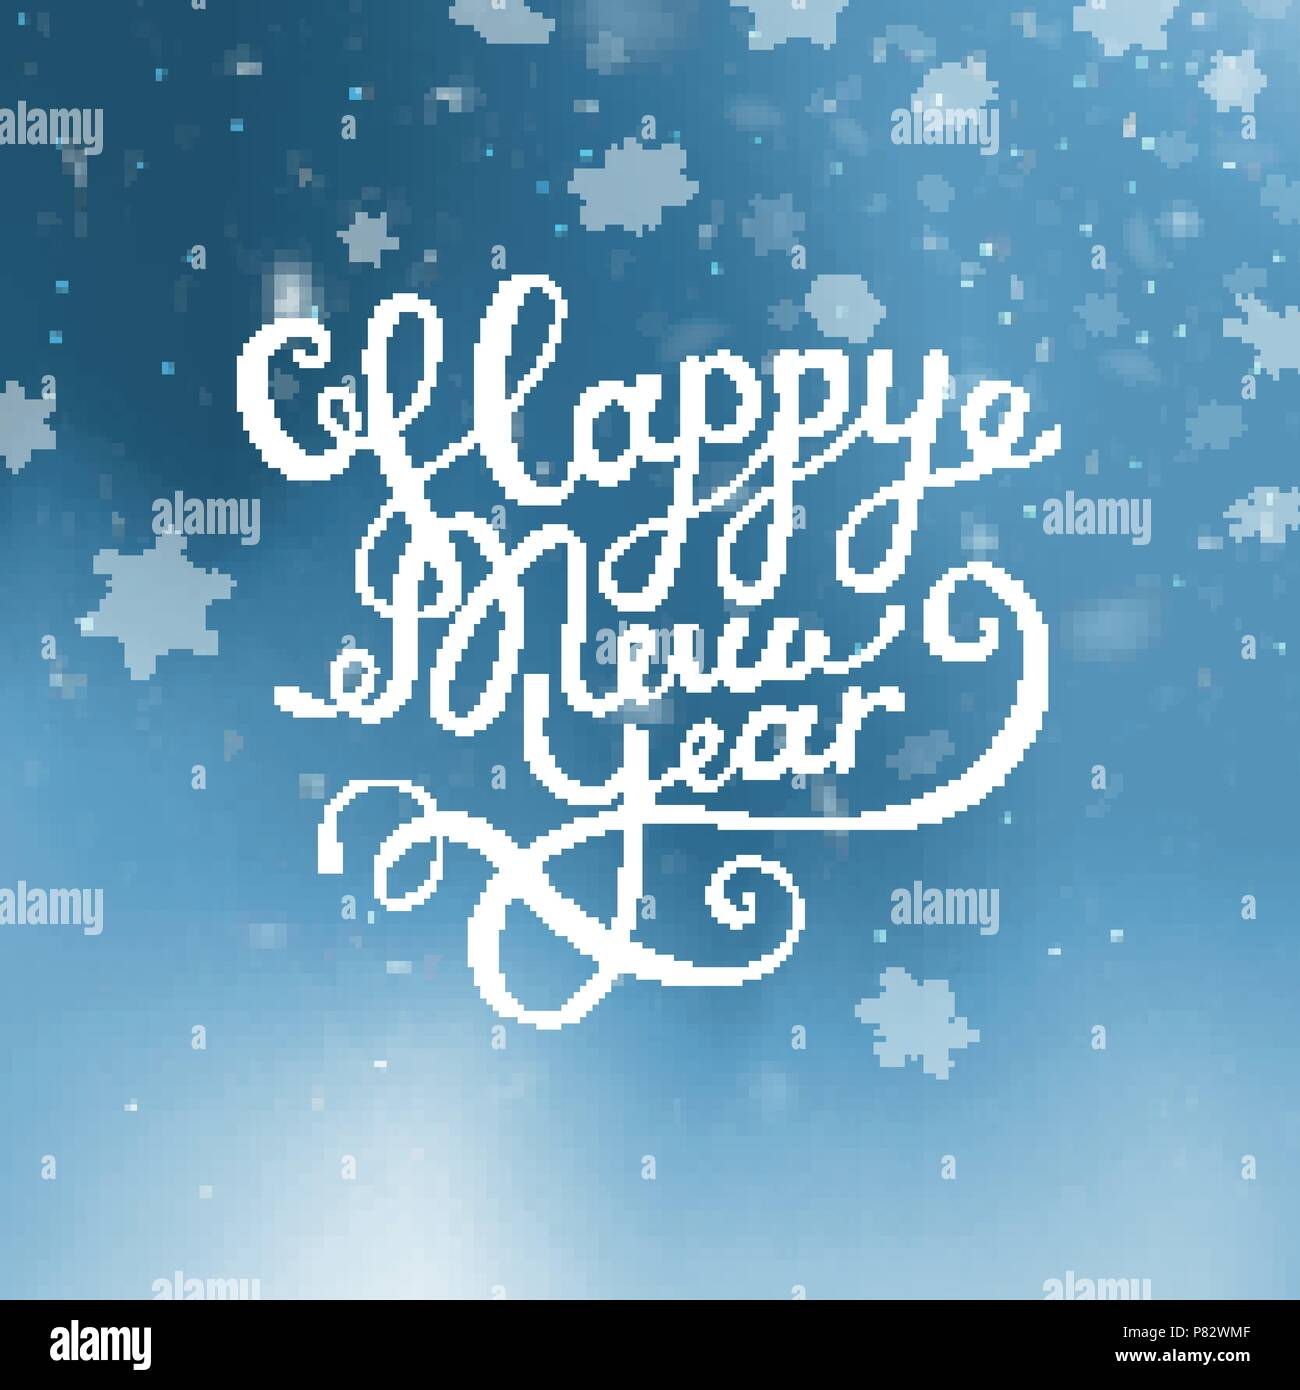 vector illustration christmas and happy new year blurred blue background falling snow wallpaper 2019 2018 lettering greeting card falling snow